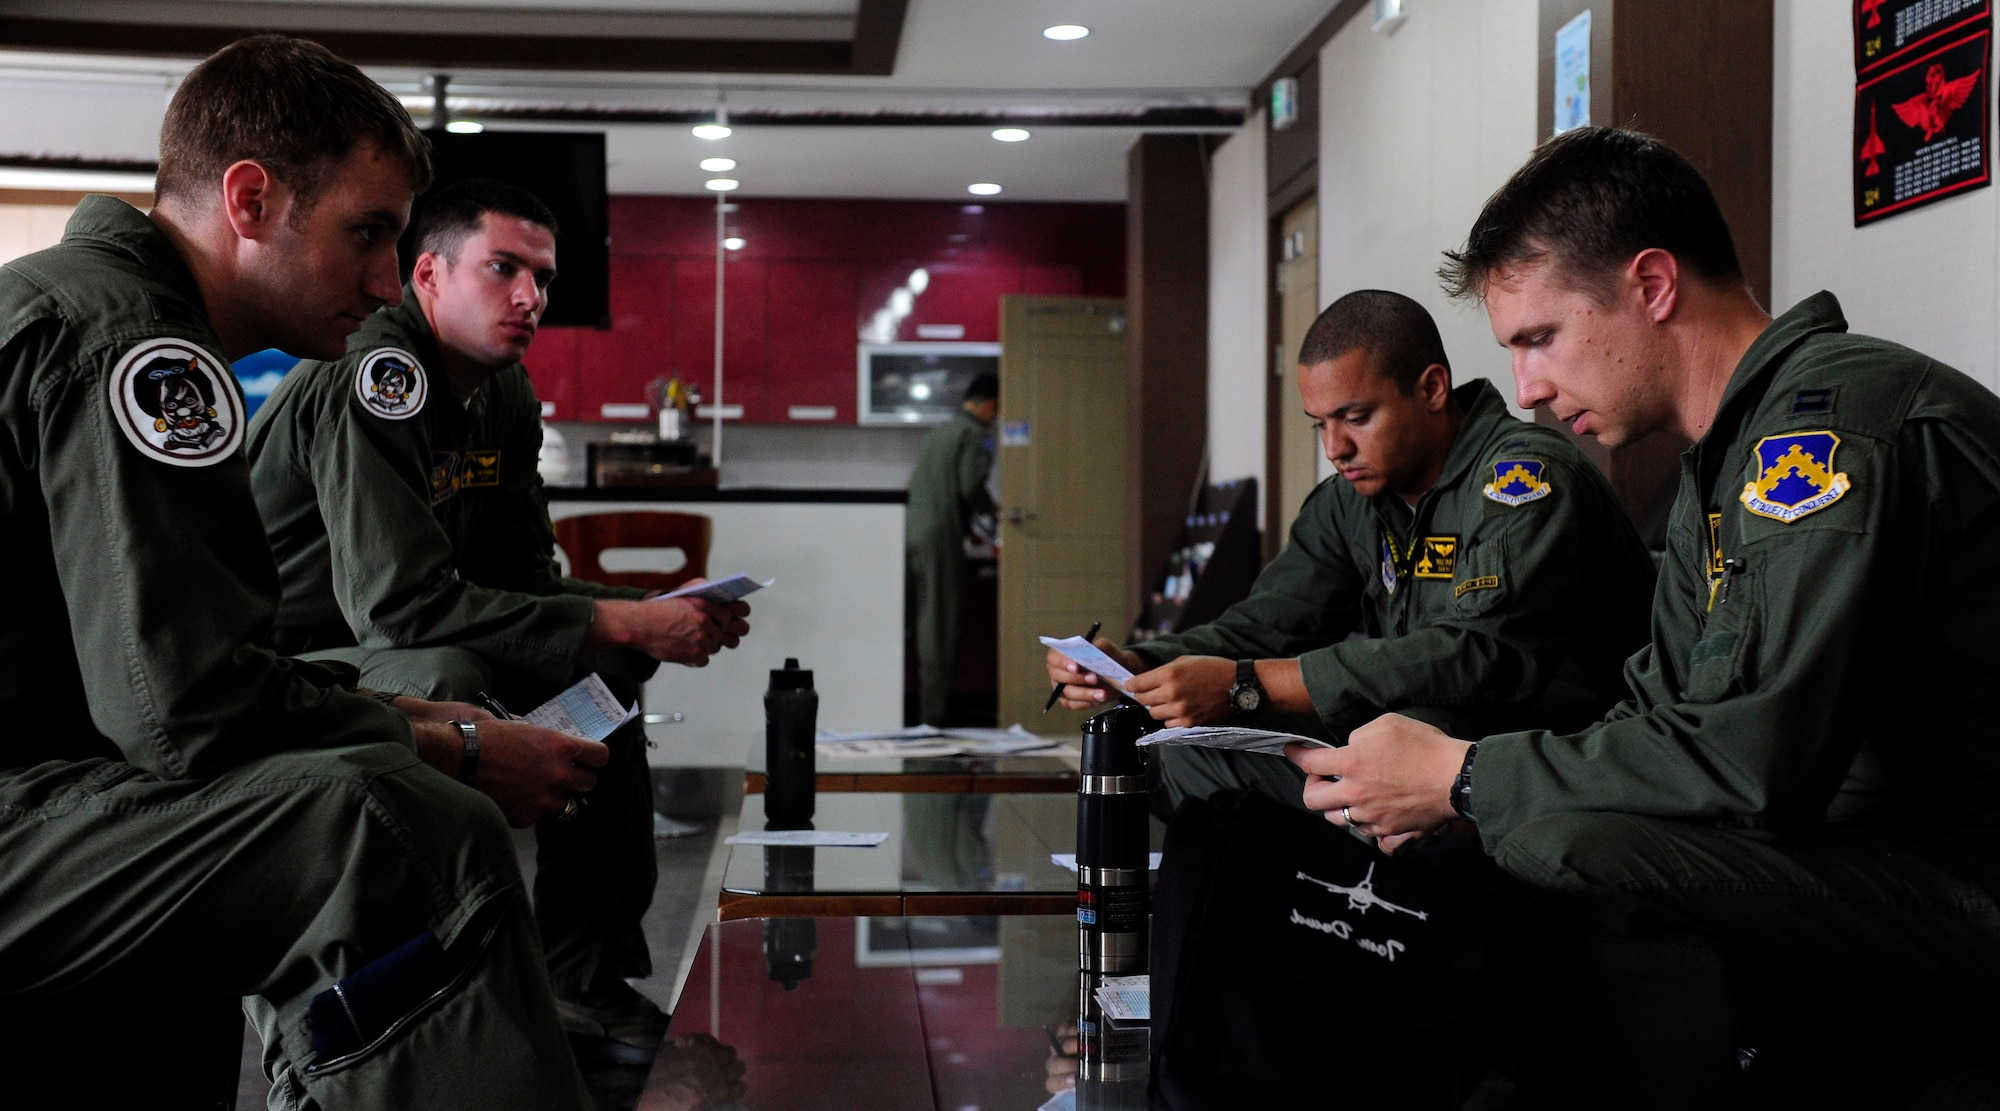 F-16 Fighting Falcon pilots from the 80th Fighter Squadron at Kunsan Air Base, South Korea, review and discuss flight procedures at Jungwon Air Base, South Korea, during Buddy Wing 15-6, July 9, 2015. Buddy Wing exercises are conducted multiple times throughout the year to sharpen interoperability between U.S. and South Korean forces so, if the need arises, they are always ready to fight as a combined force. (U.S. Air Force photo/Staff Sgt. Nick Wilson)